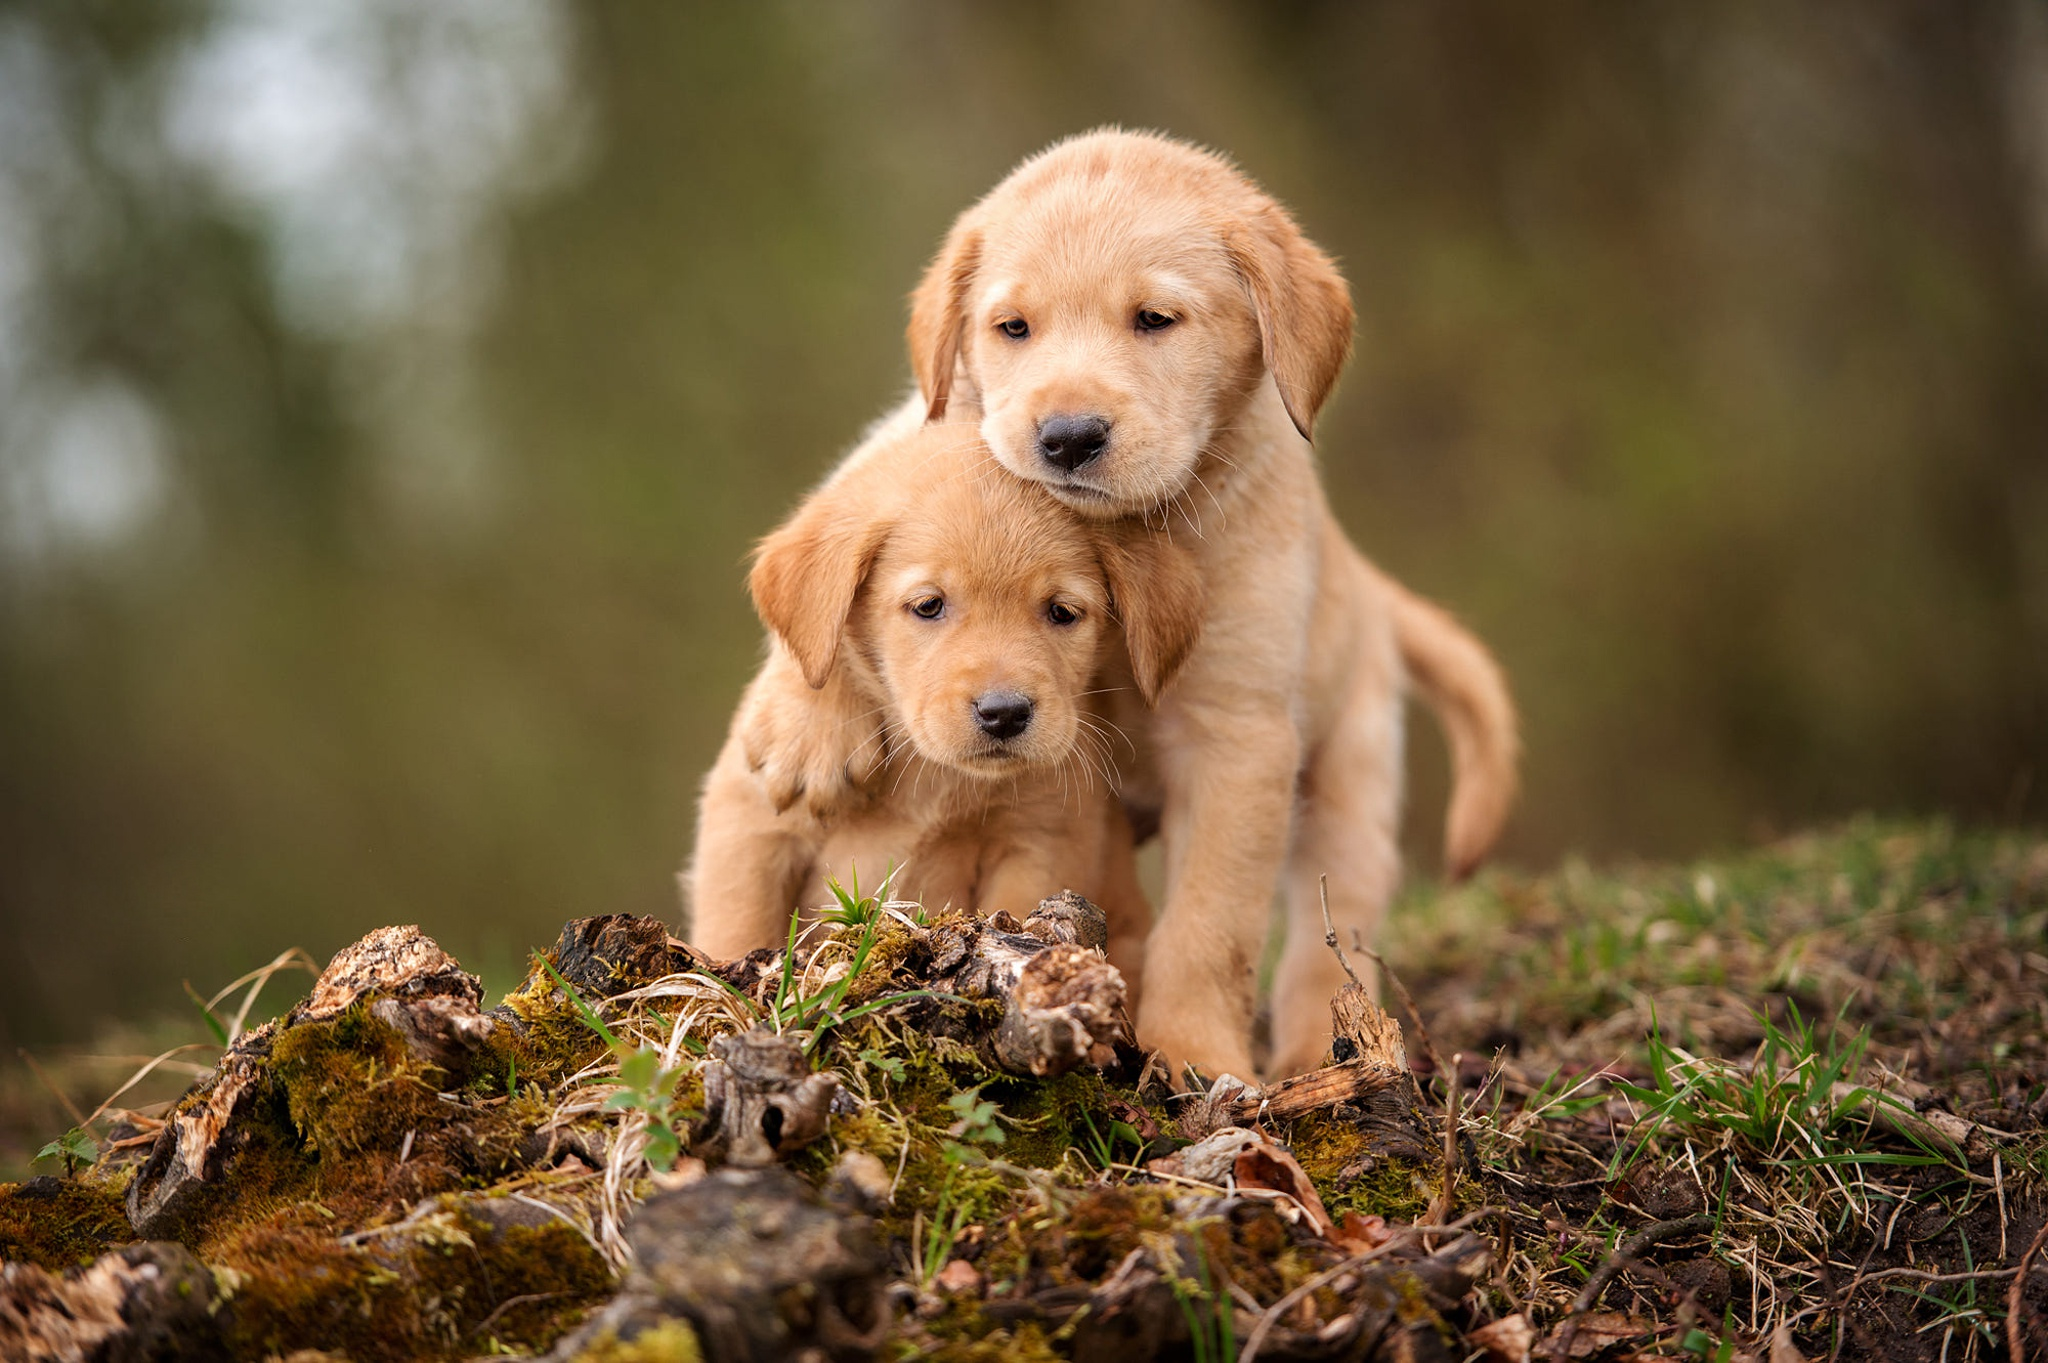 pictures of puppies - HD